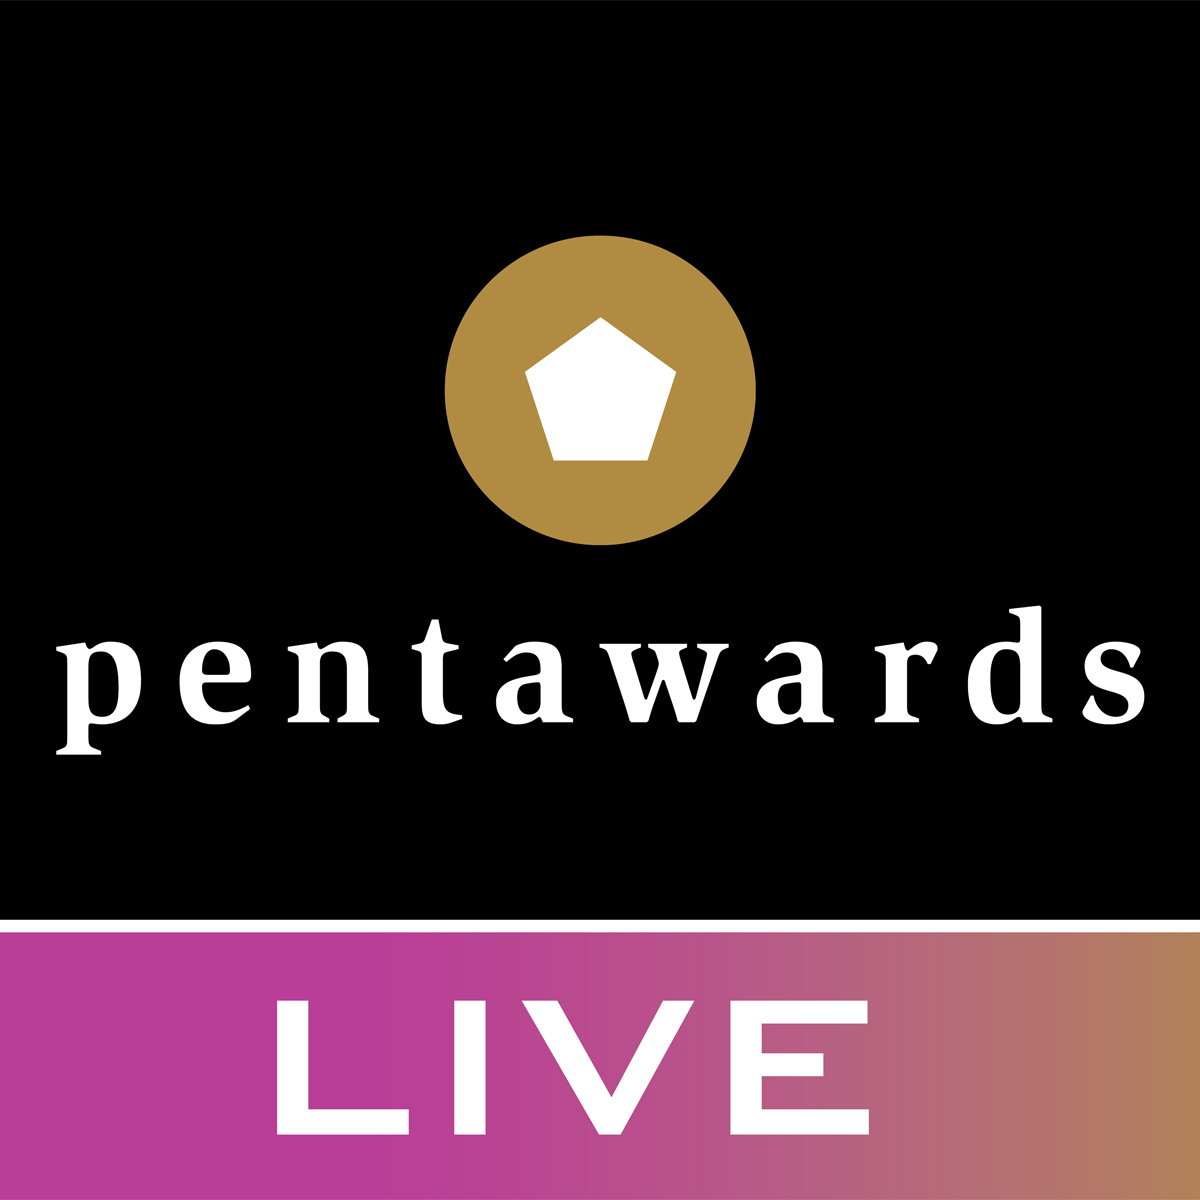 Pentawards Live - Inaugural International Conference Debuts in Amsterdam